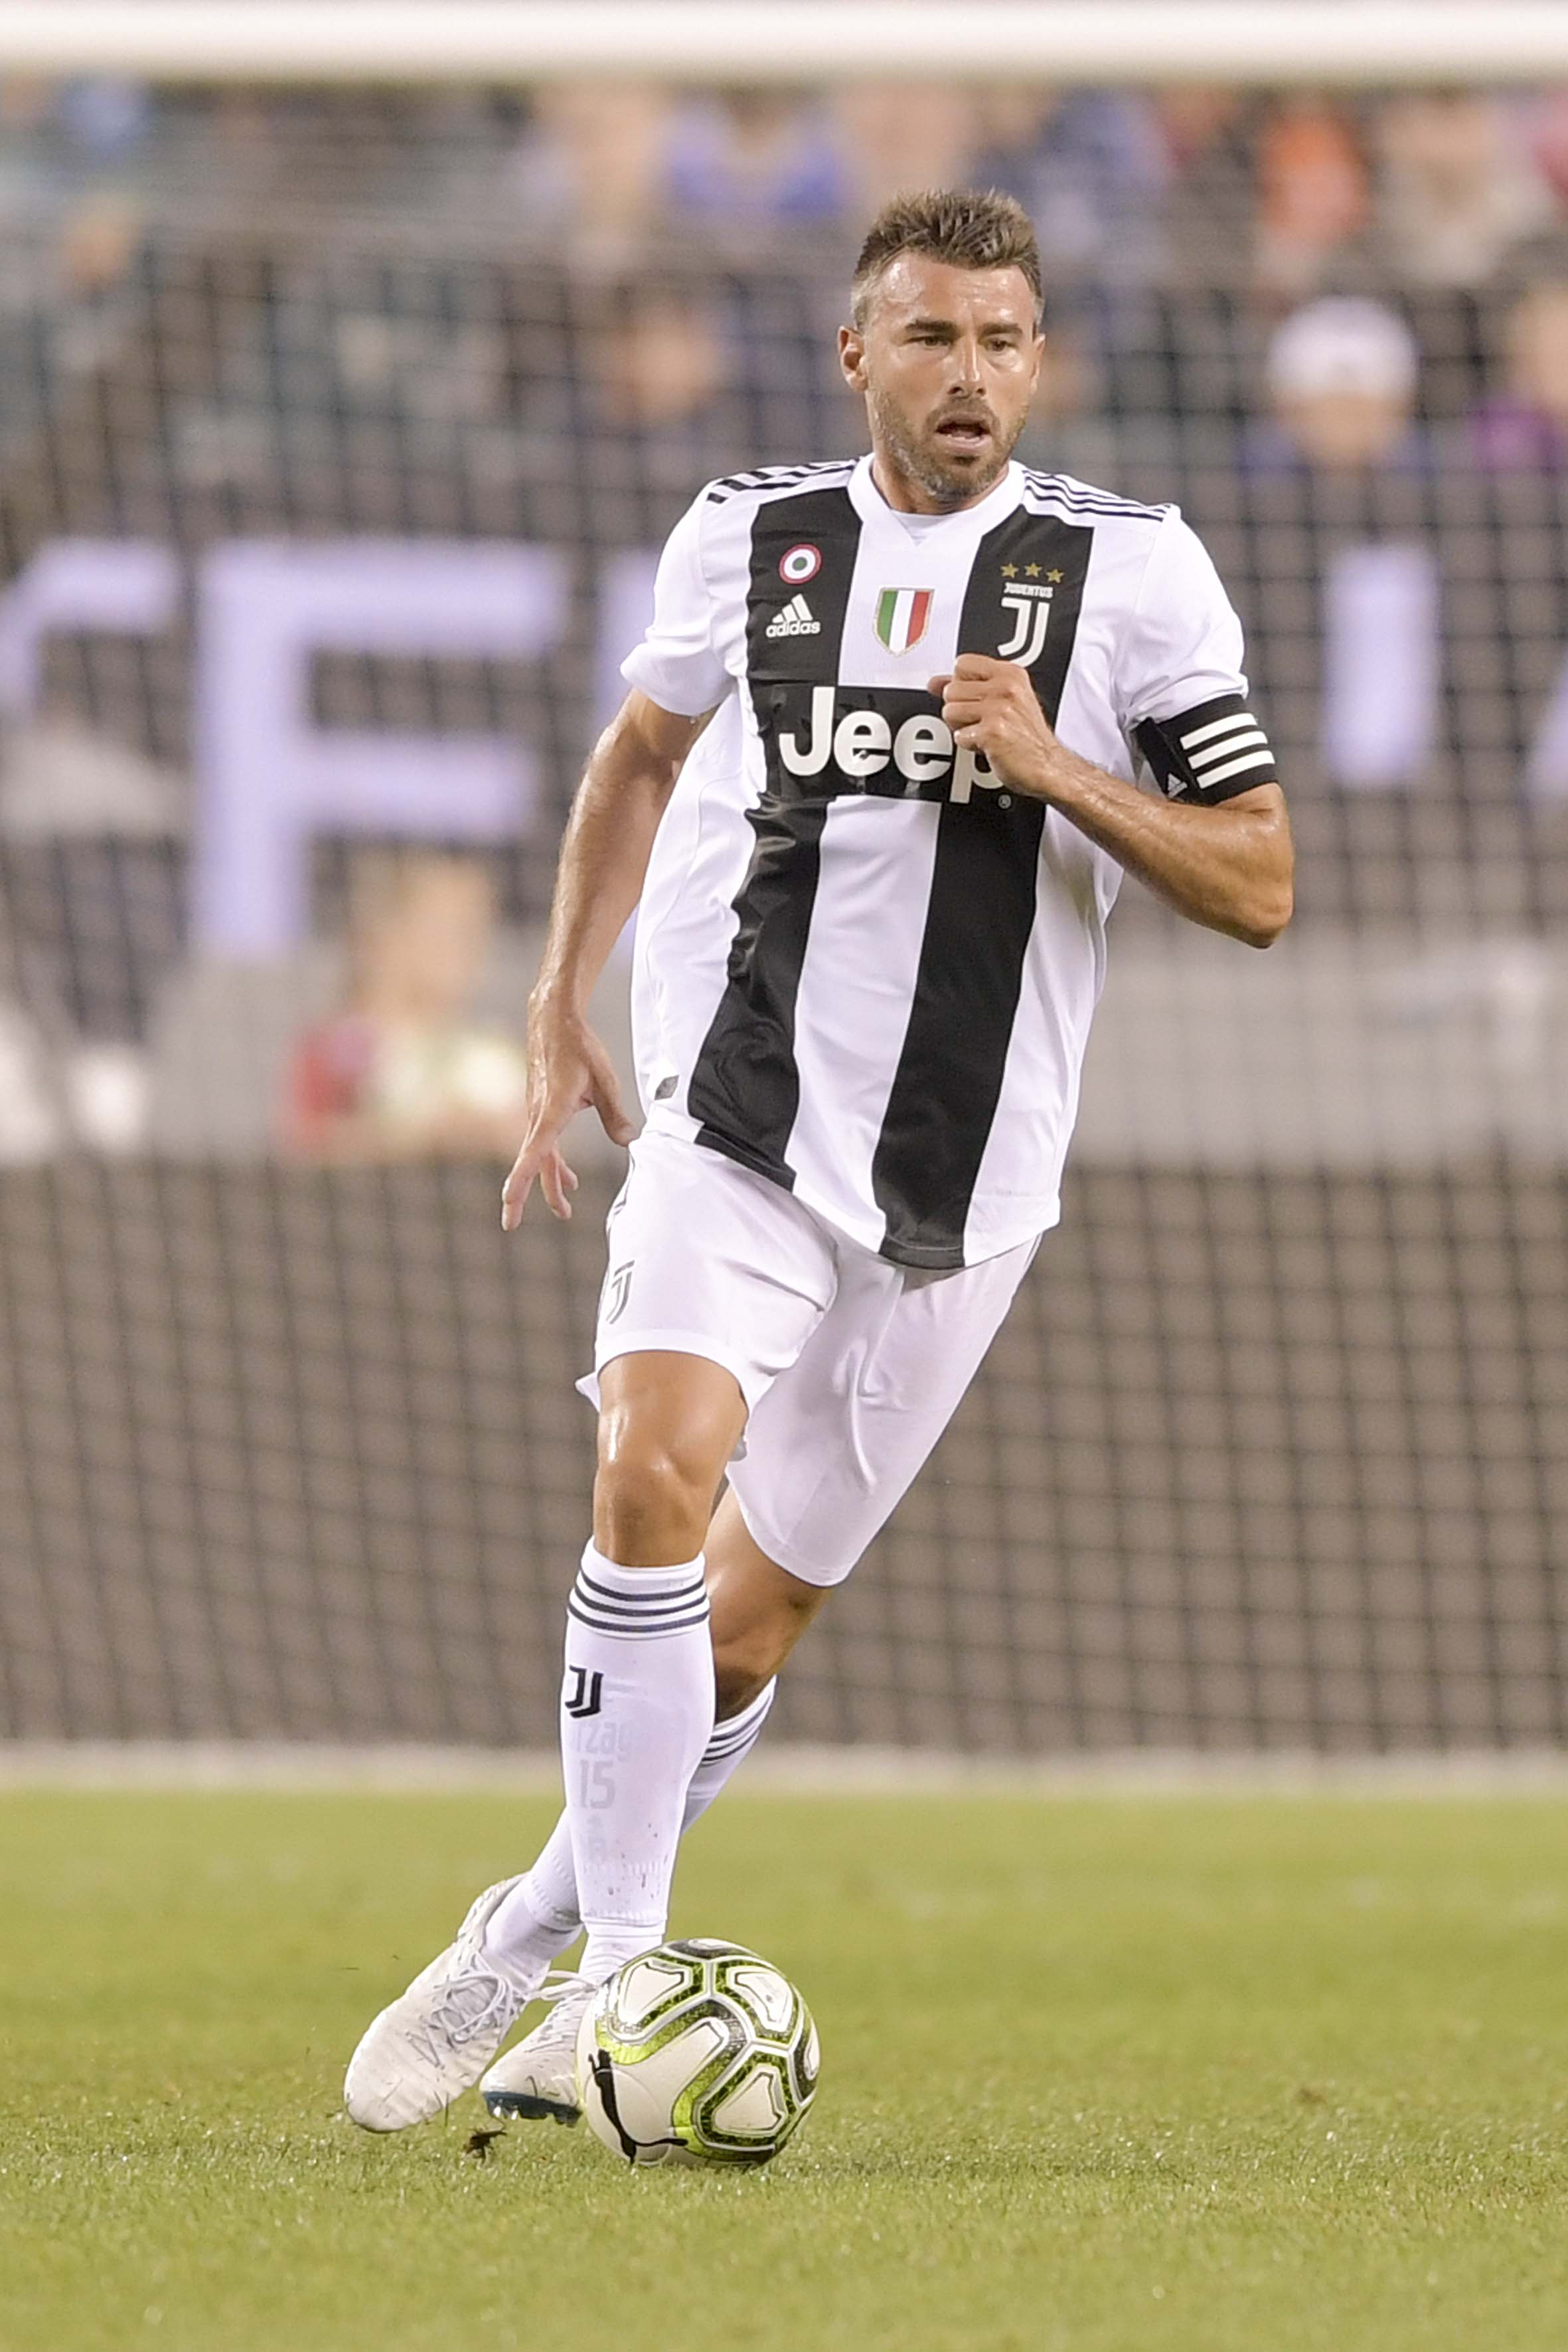 One of the B's in Juve's 'BBC' back-line is hanging up his boots